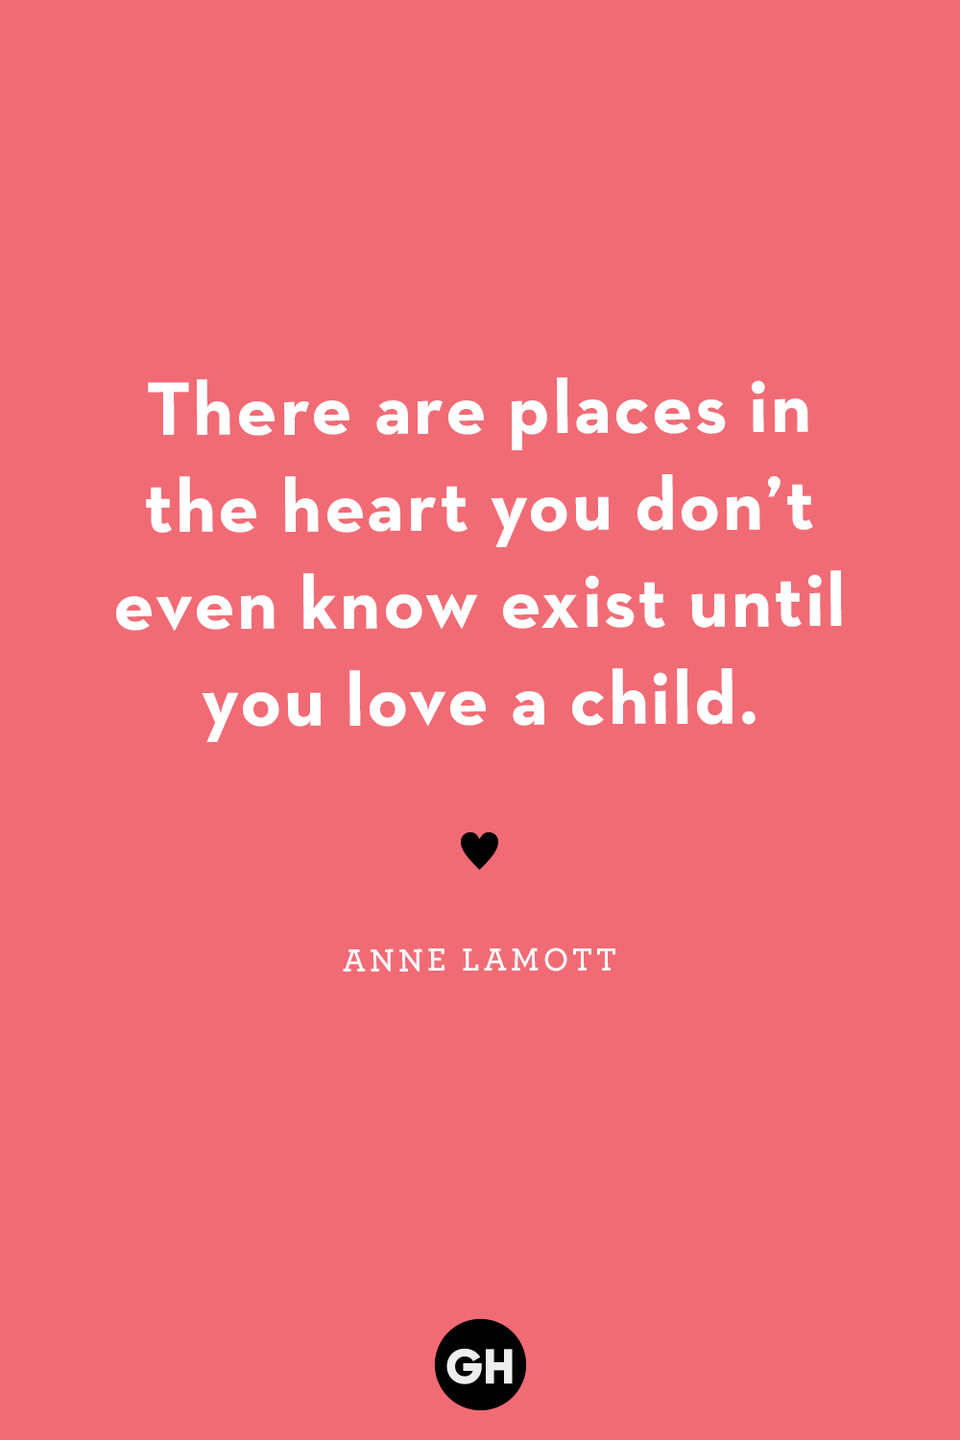 <p>There are places in the heart you don't even know exist until you love a child.</p>